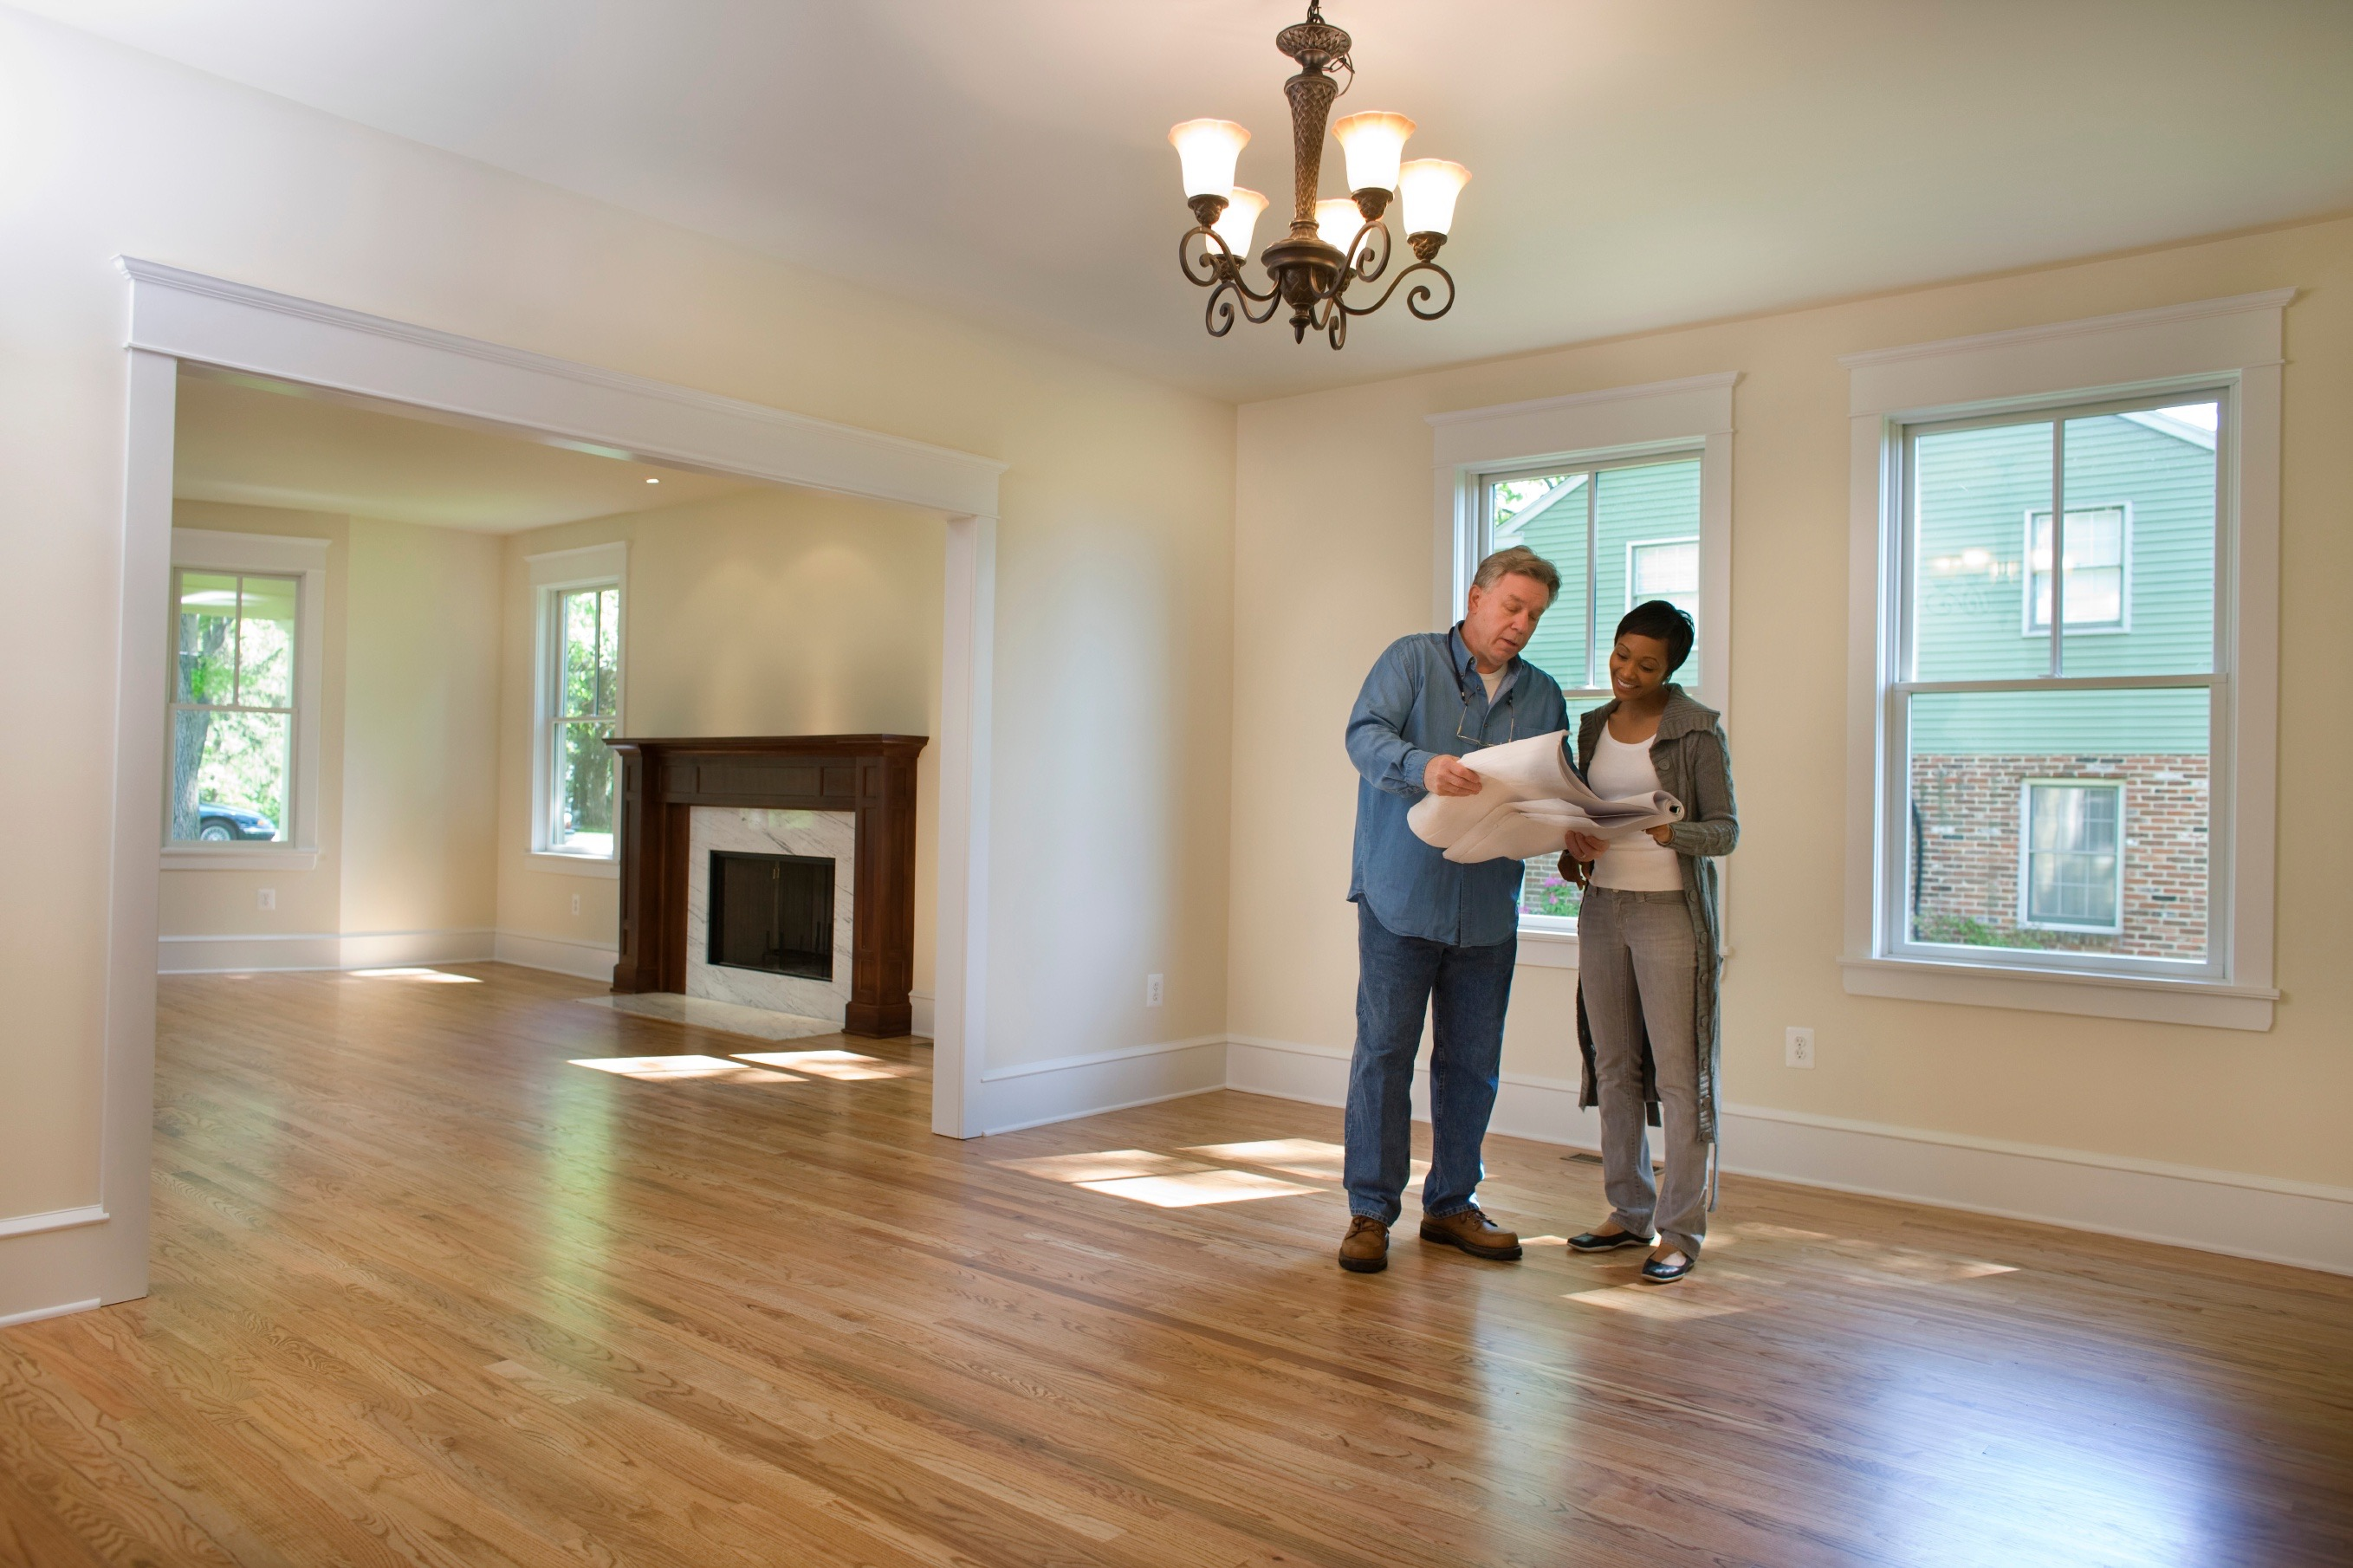 Have your home tested to make sure you aren't at risk